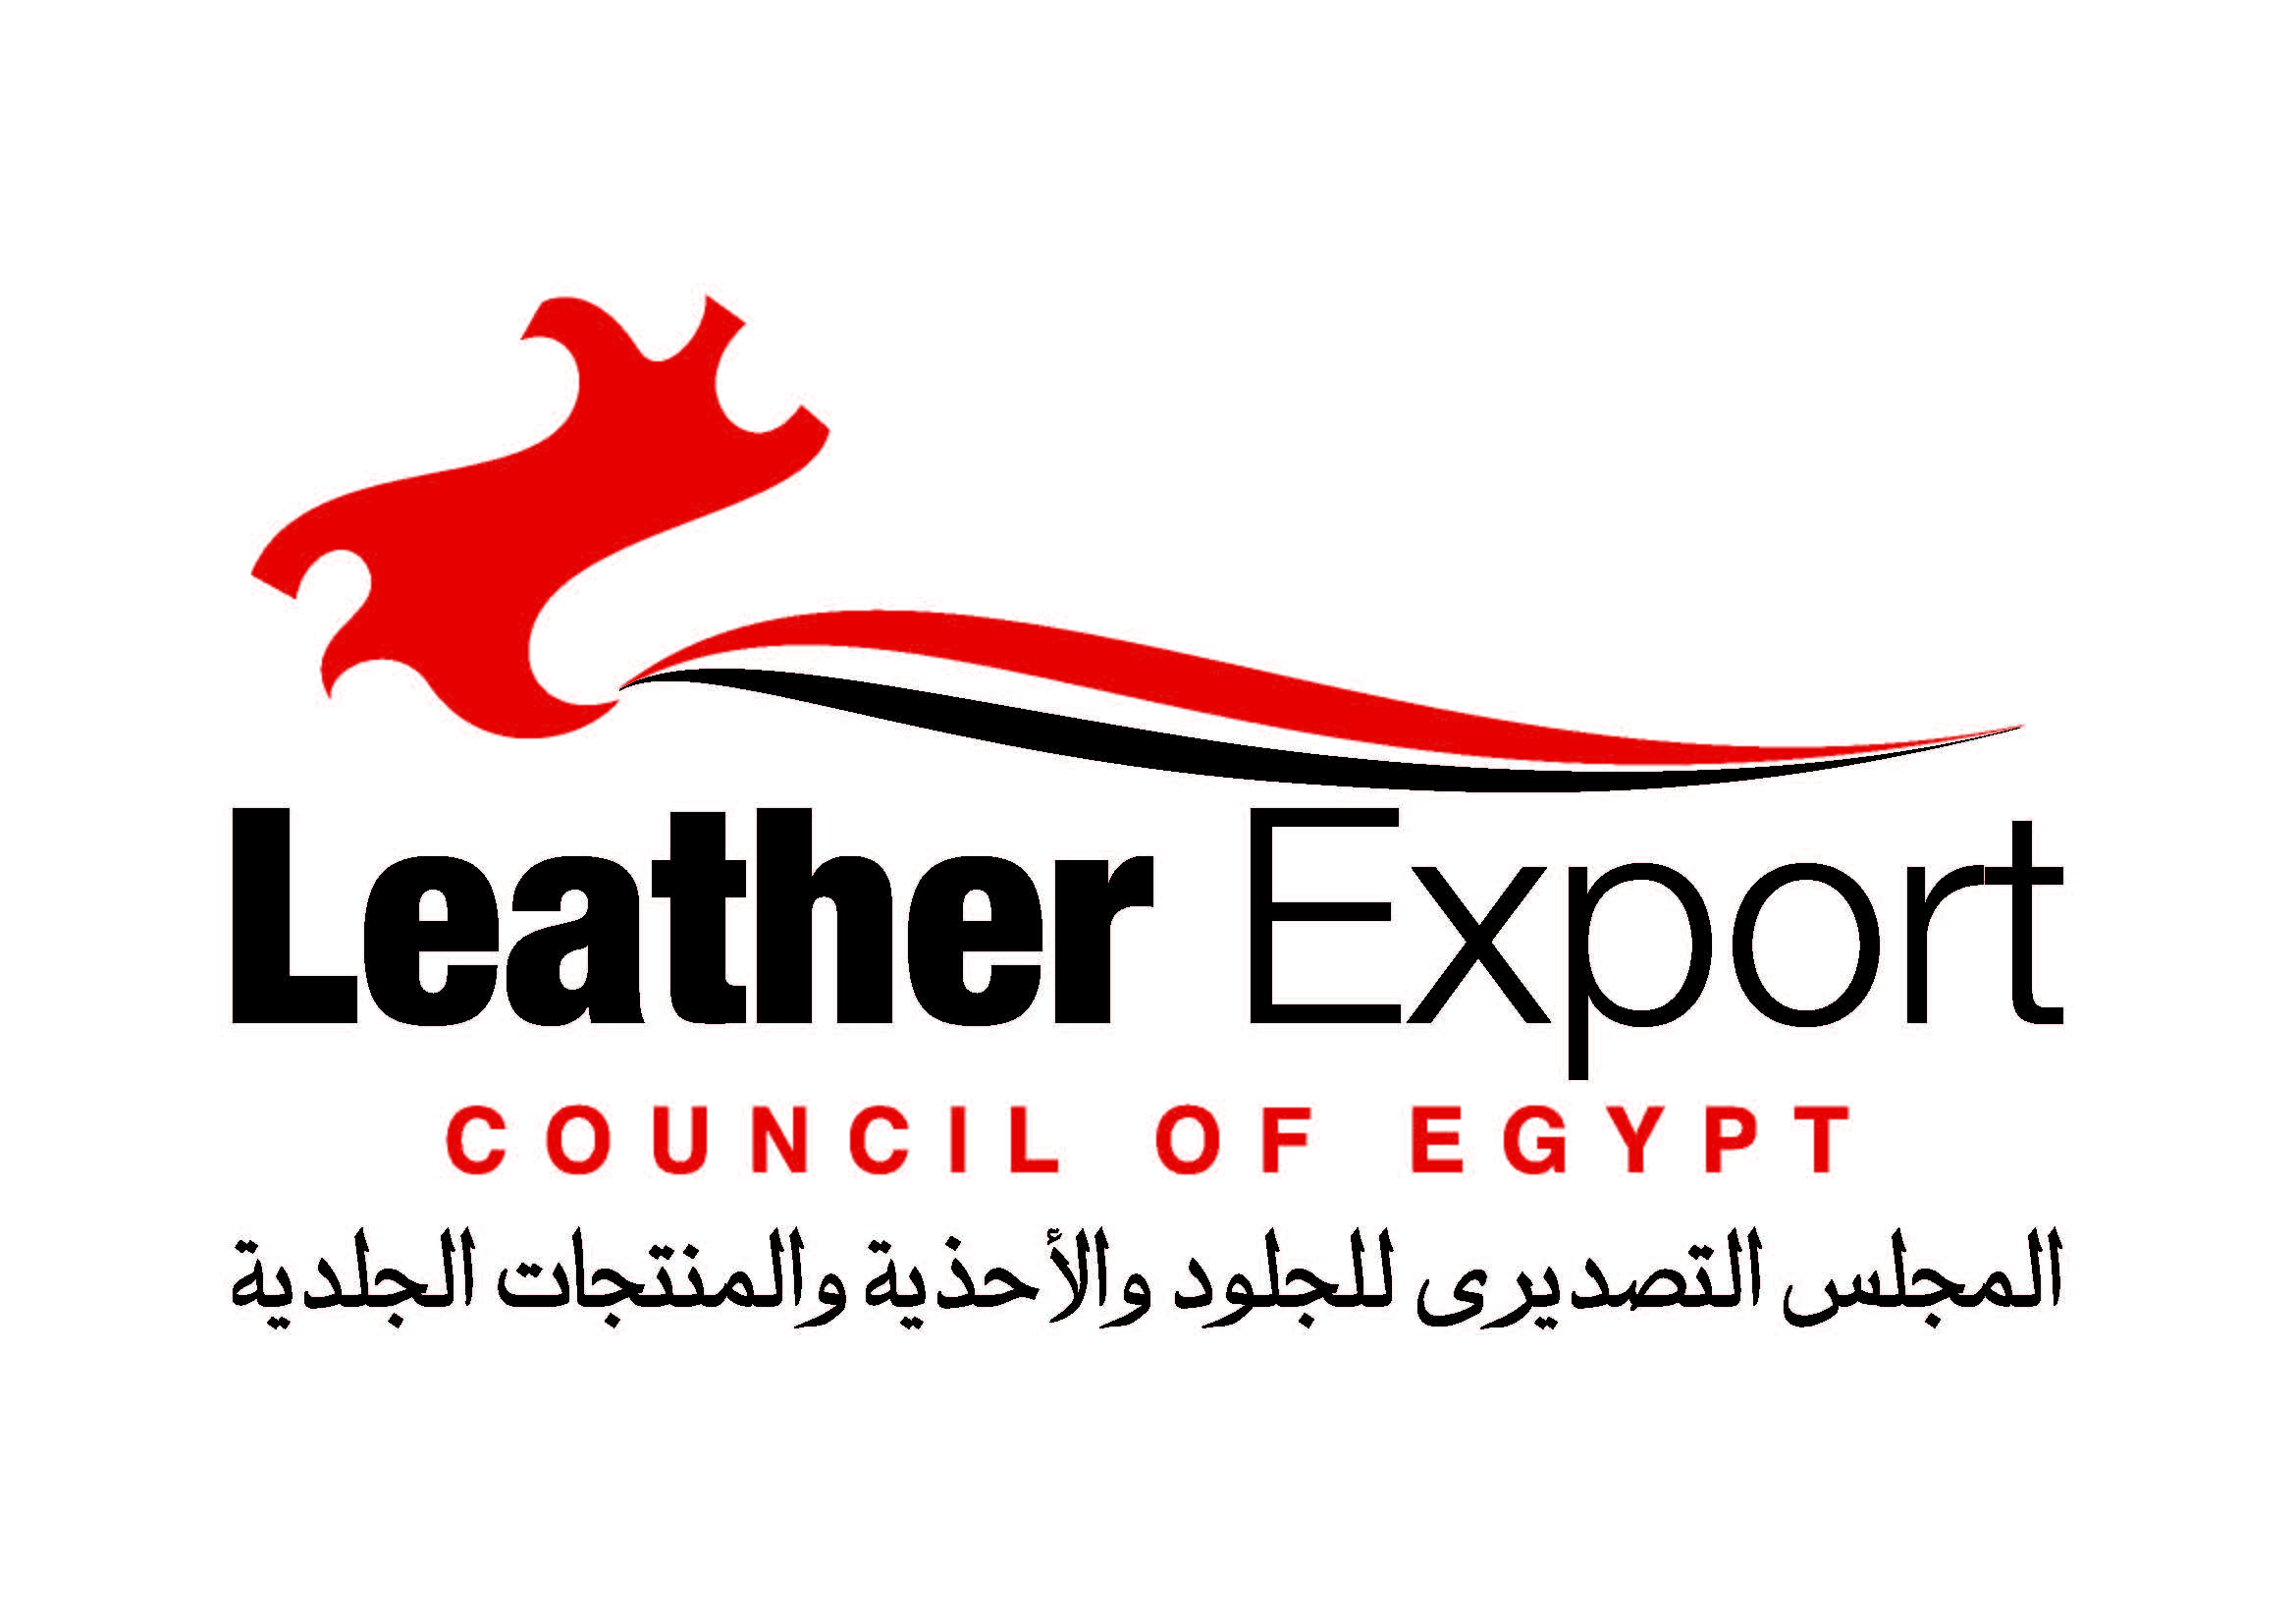 Leather Export Council of Egypt